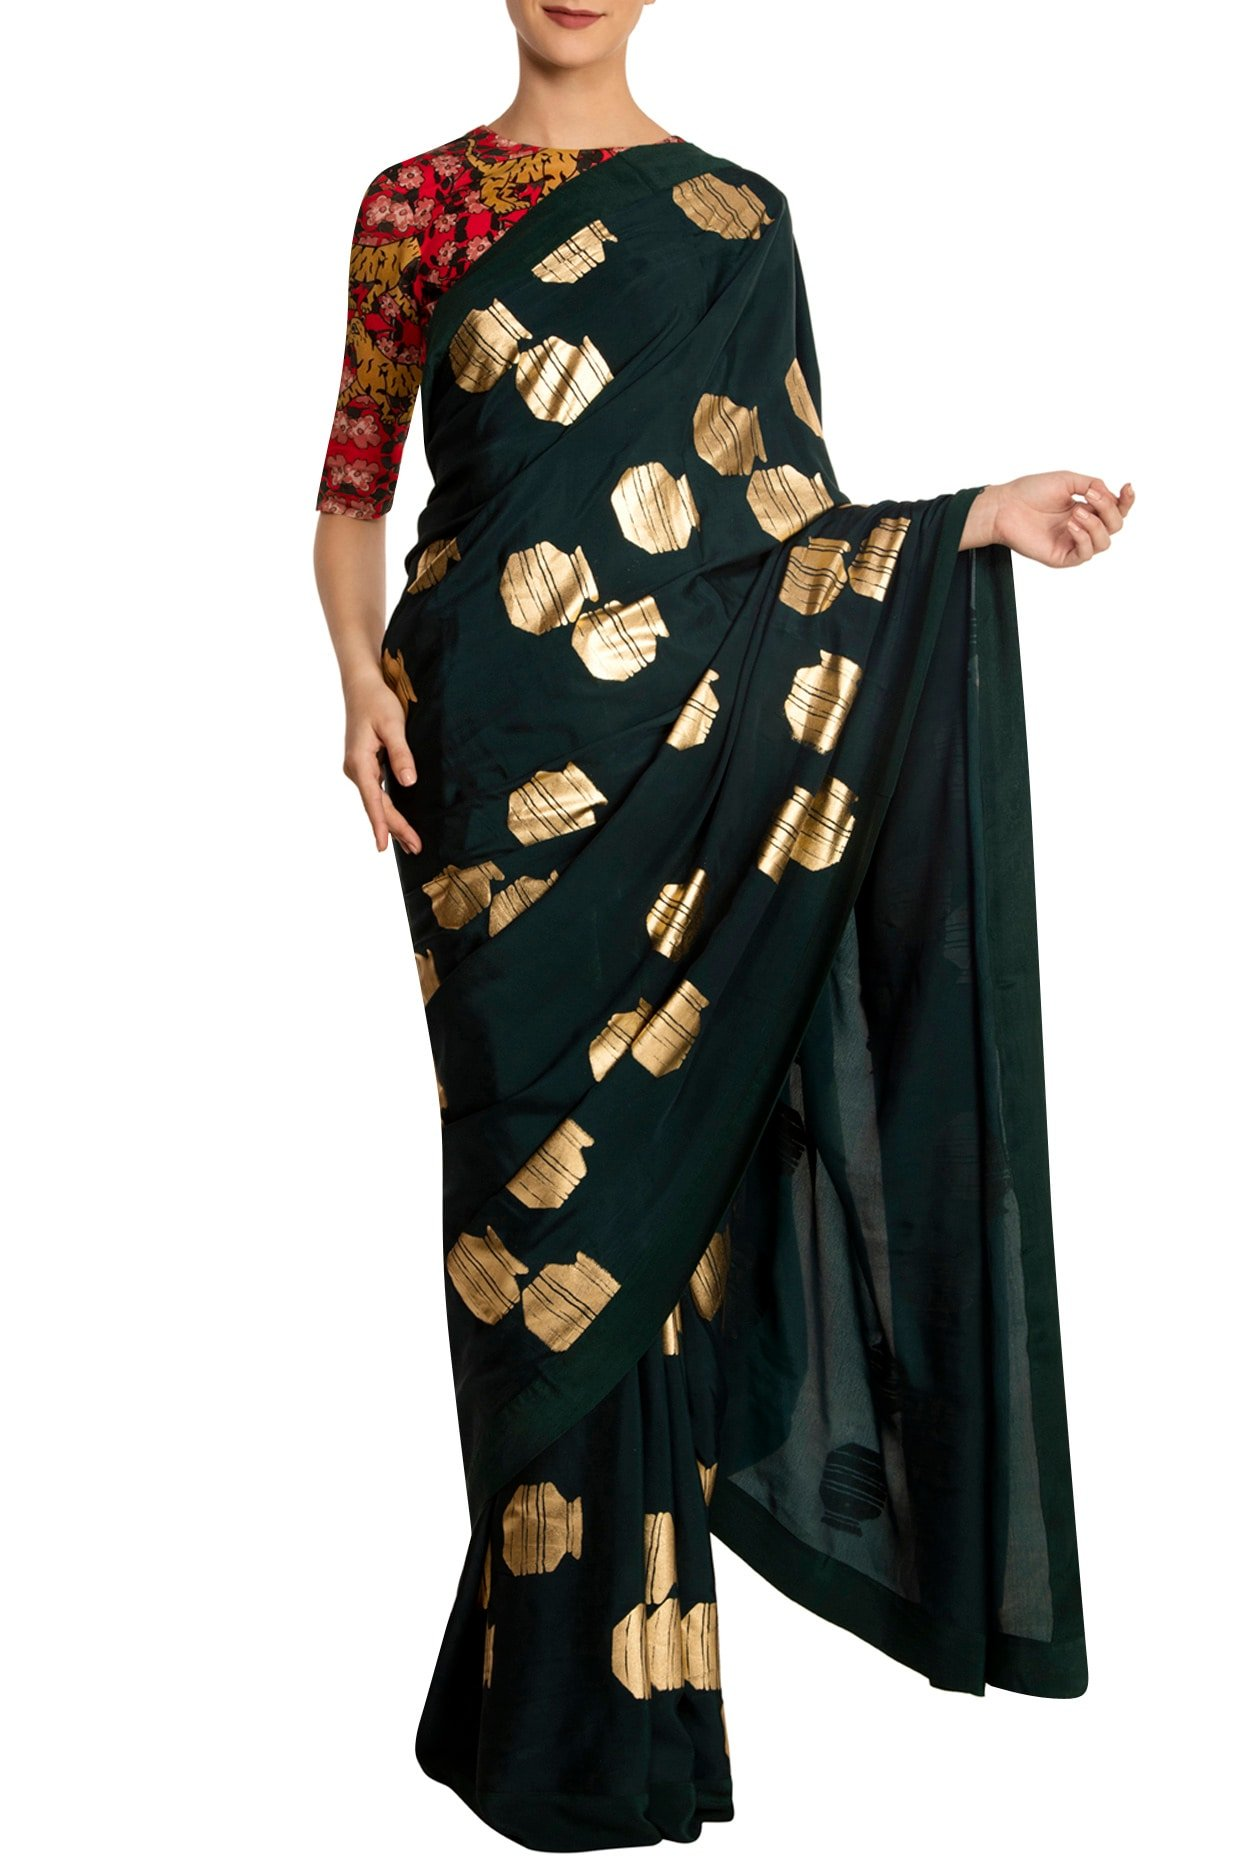 Teal Tribal Vase Print Saree with Red Blouse Piece by Masaba-Handpicked for You